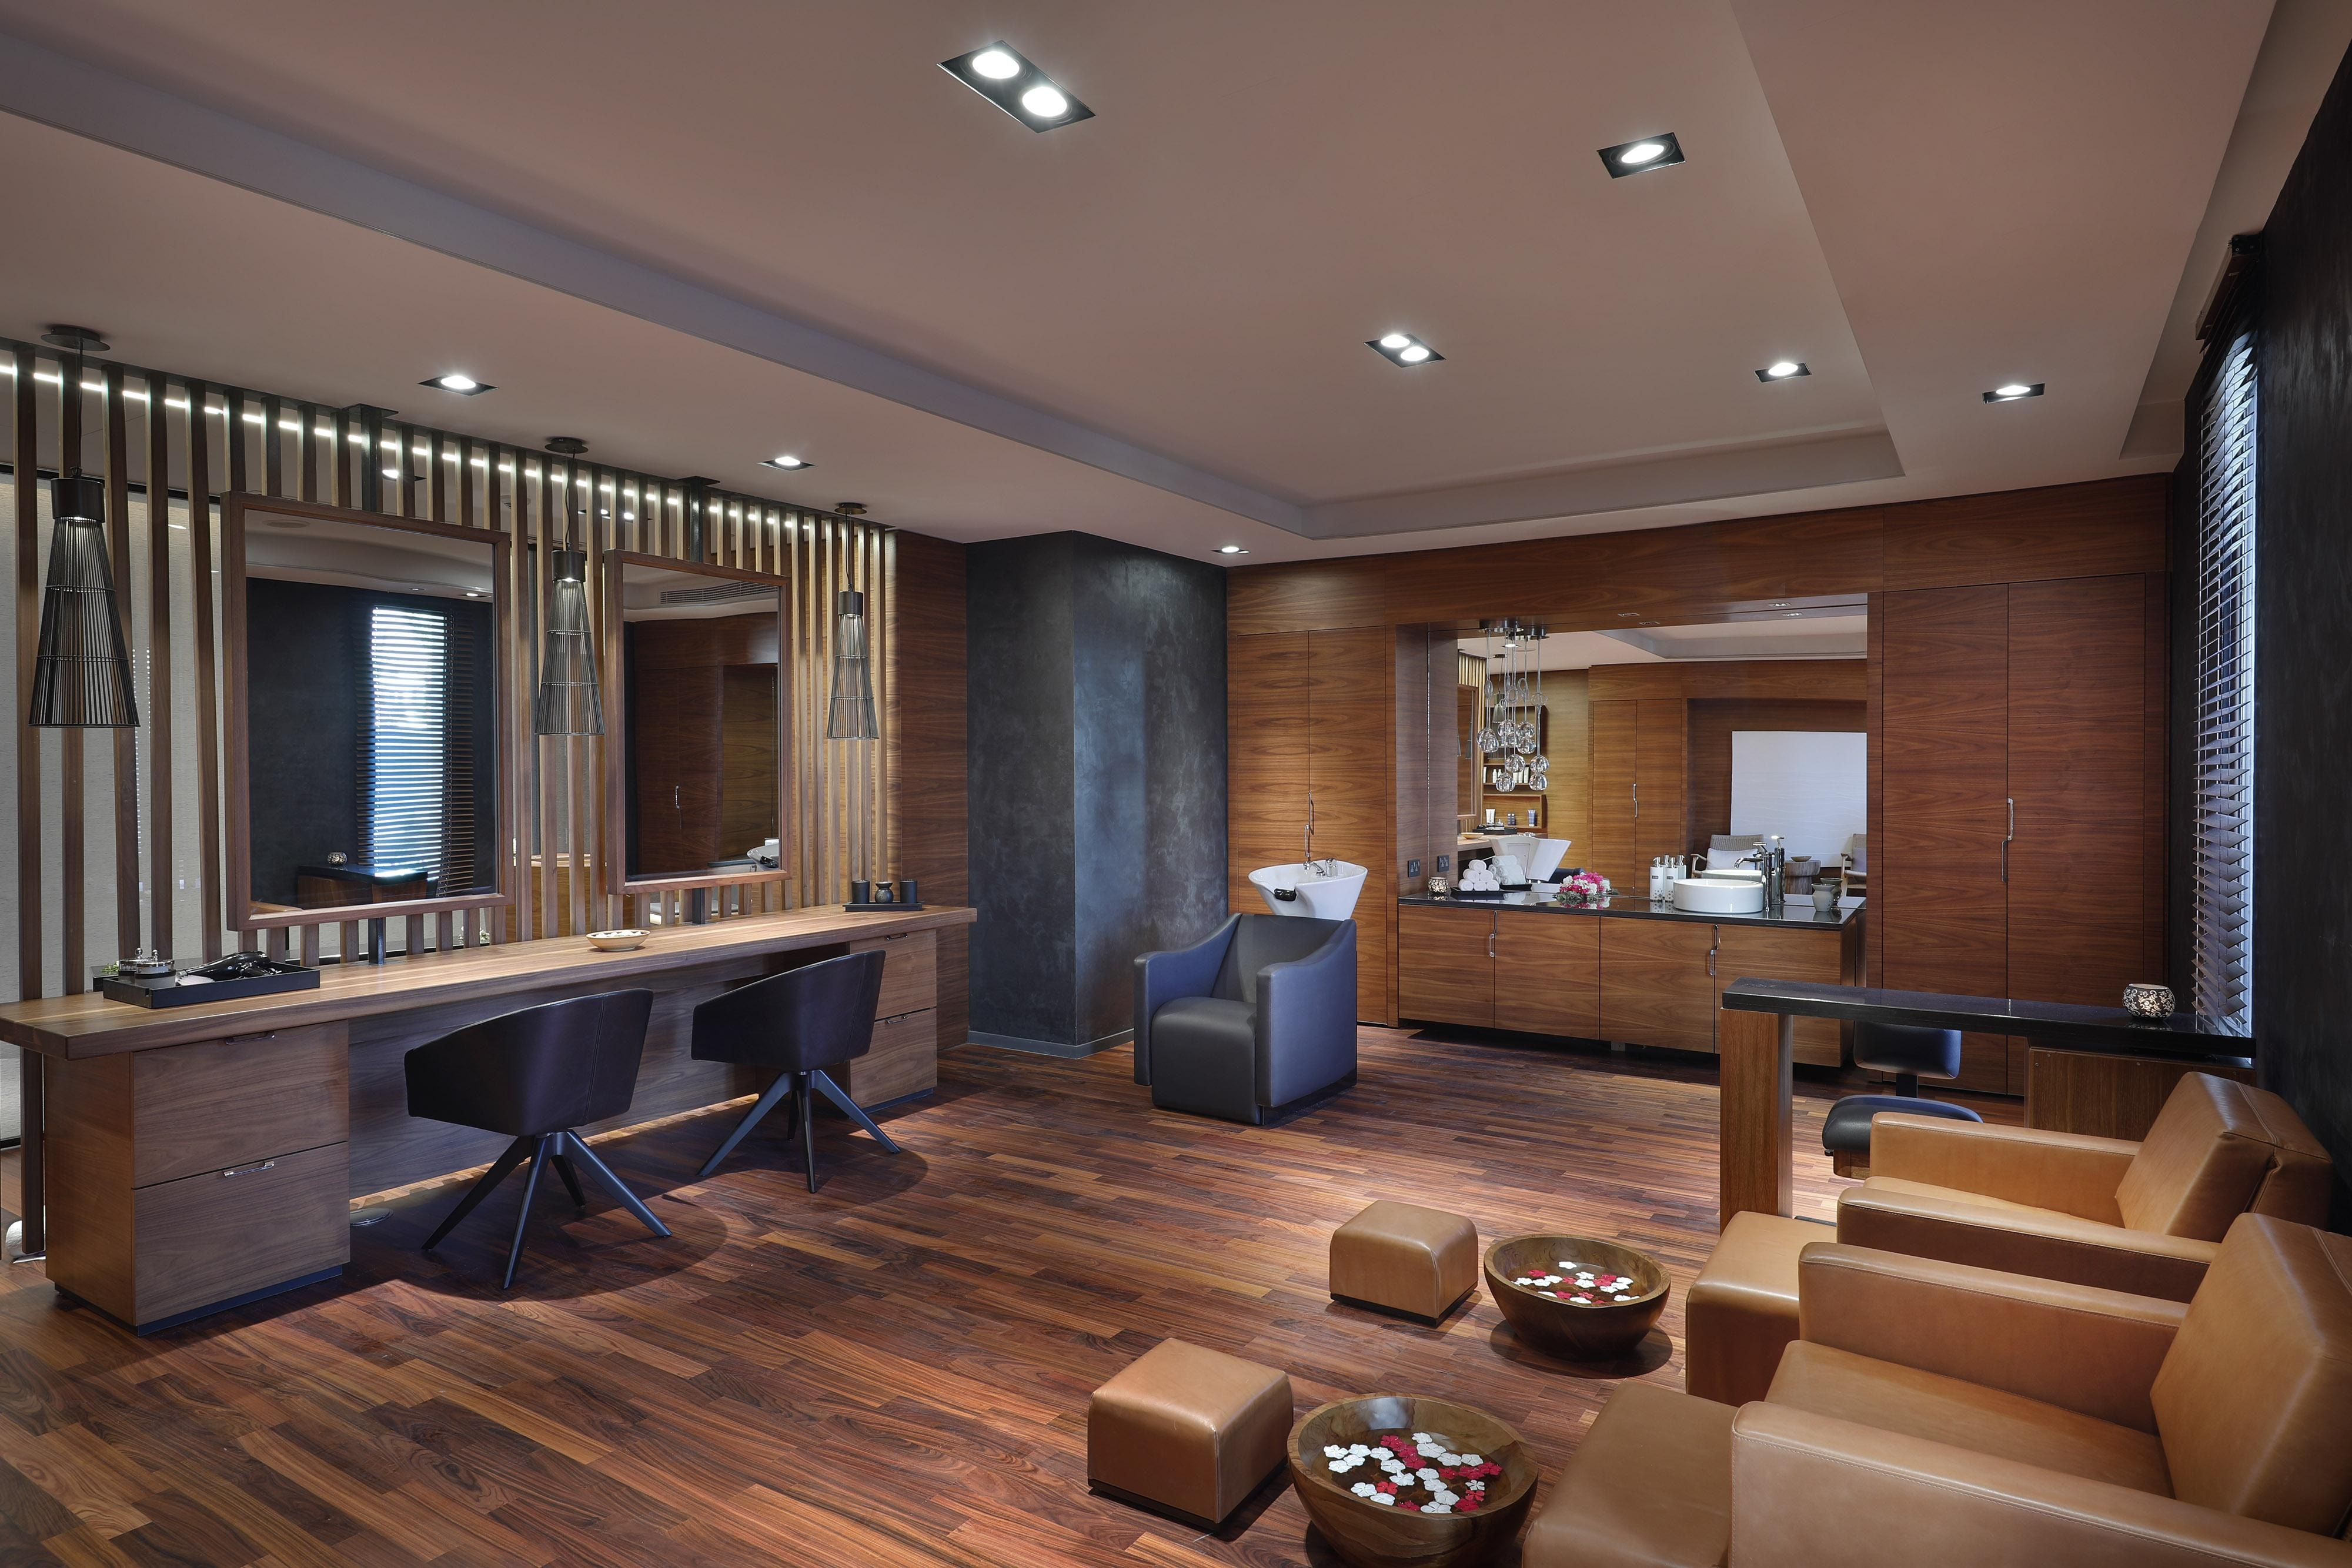 A full service Barber Shop located at our Spa offers men a haven to sit back, relax and experience the art of grooming and services.